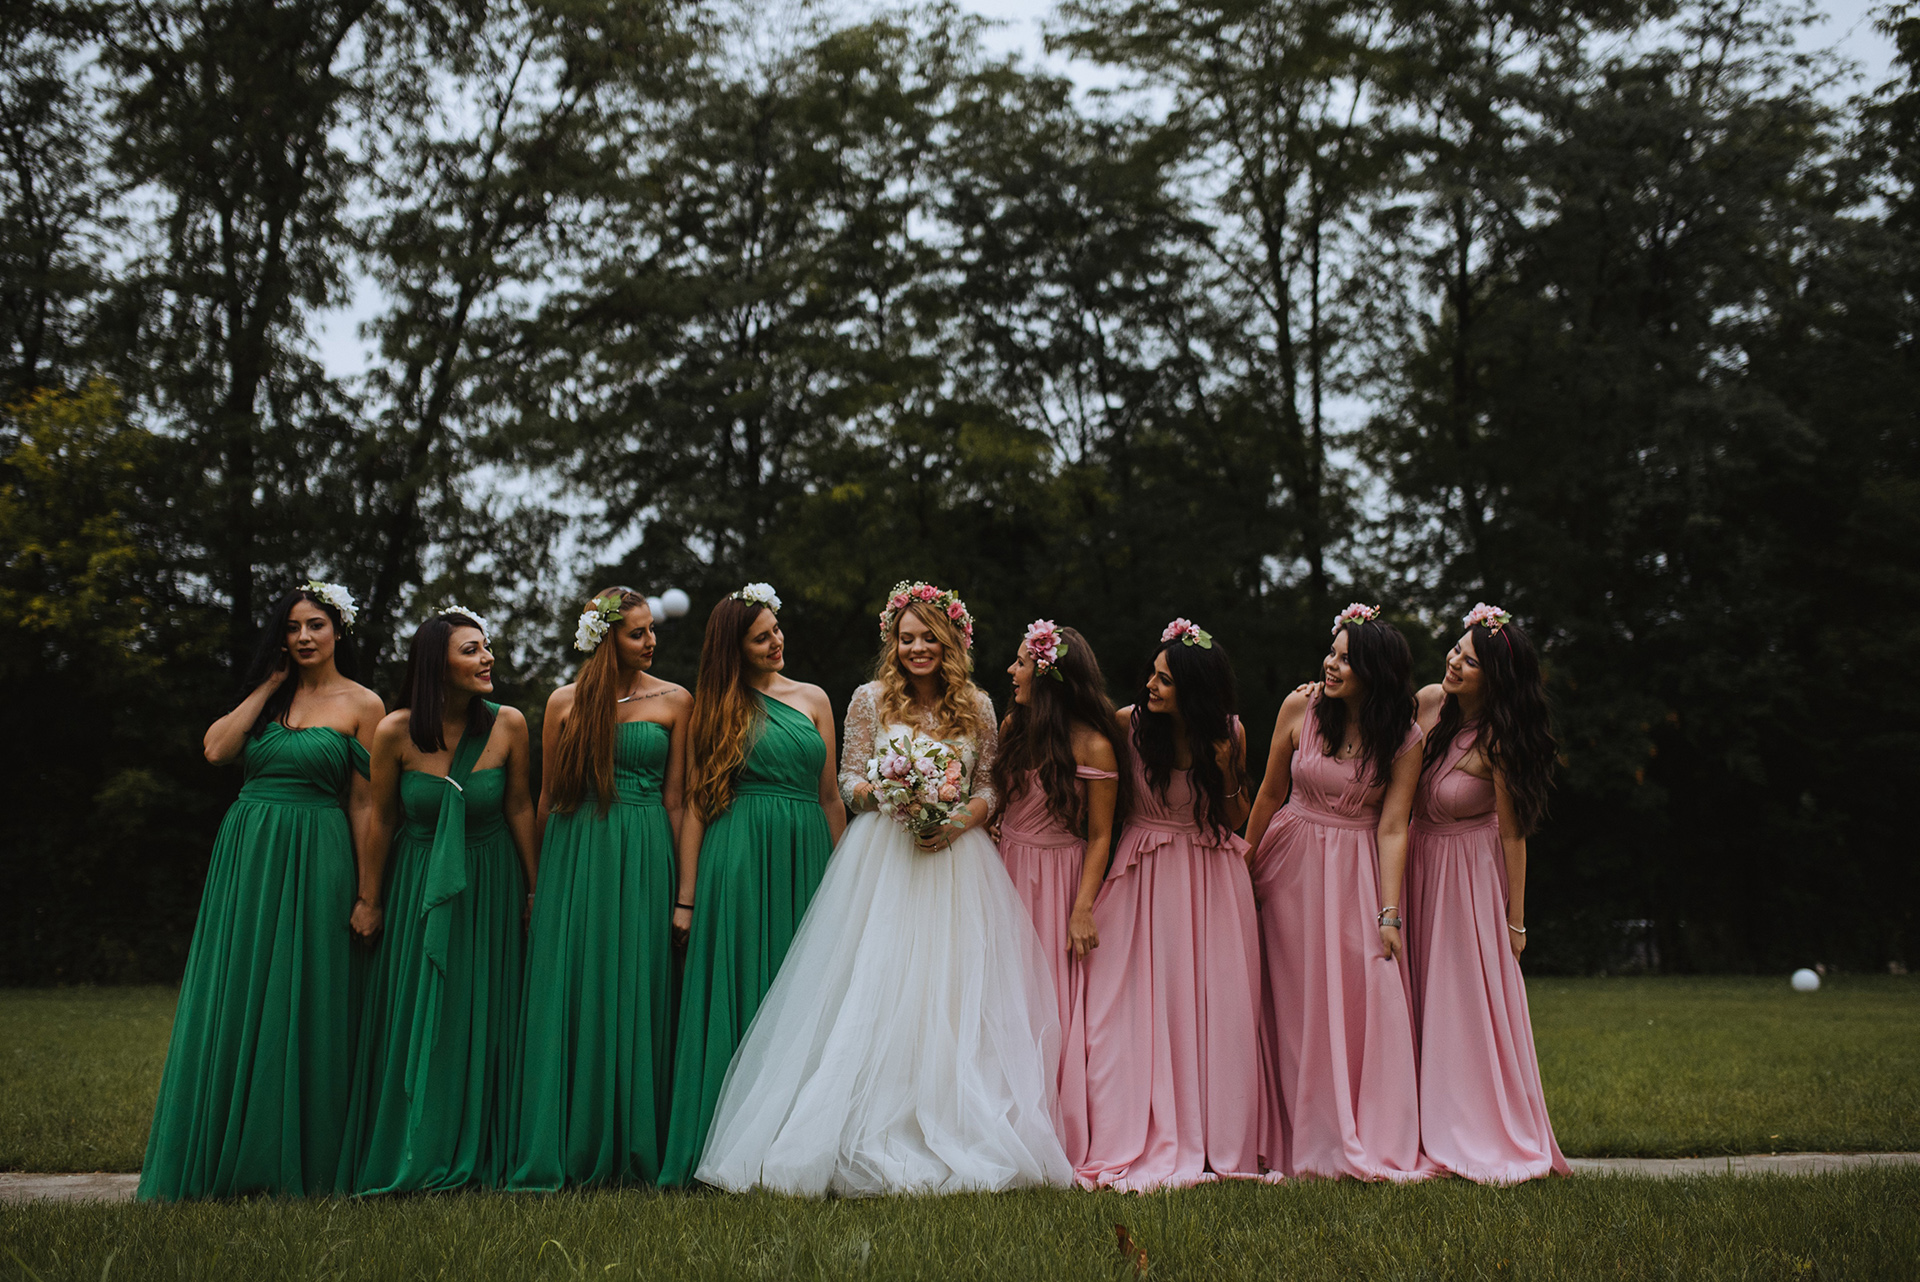 wedding-pink-and-green-bridesmaids-dresses-tulle-and-lace-wedding-dress (10)